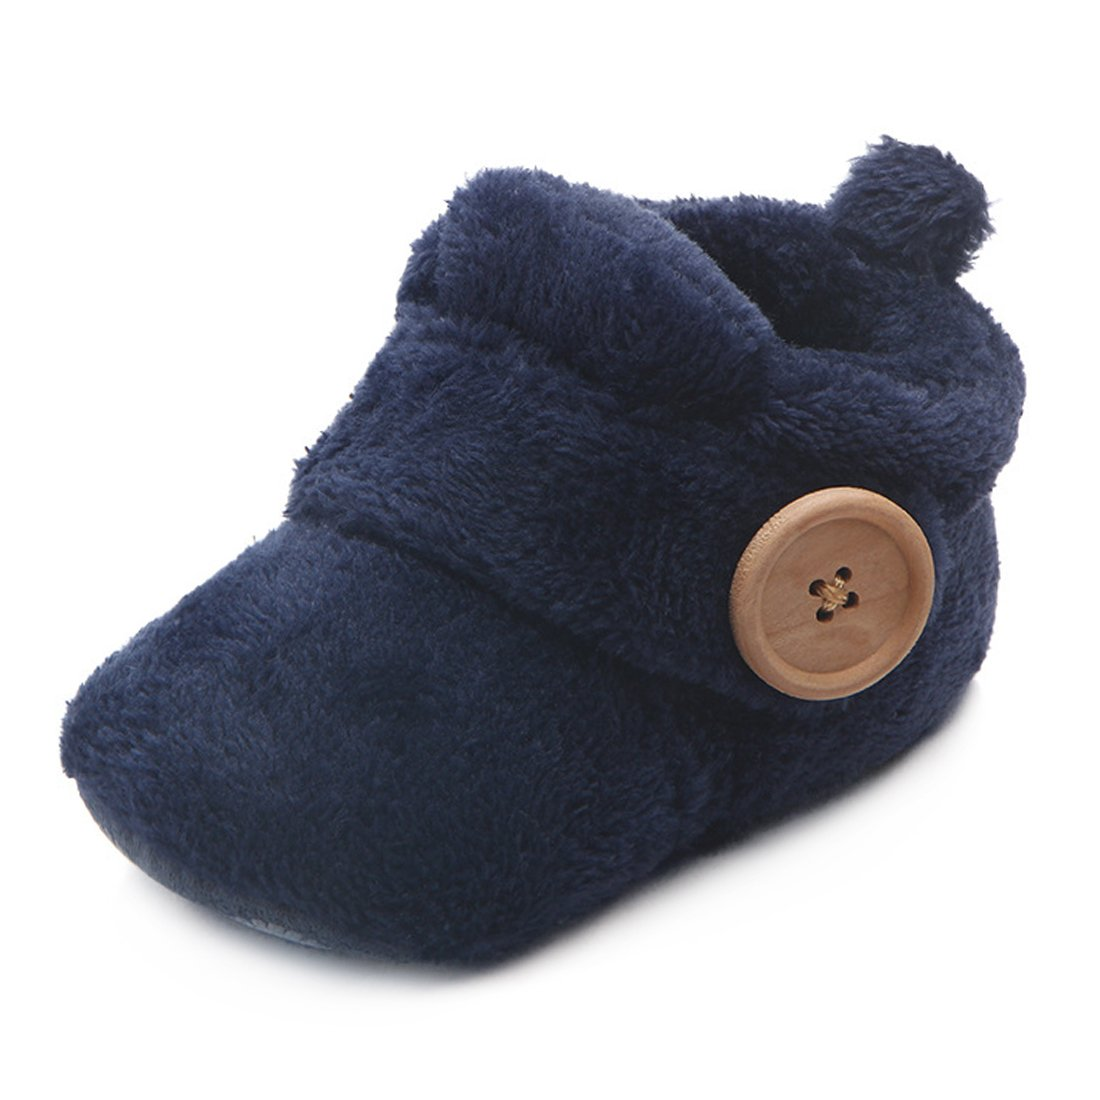 Beeliss Baby Boots Plush Warm Shoes (6-12 Months, Blue)